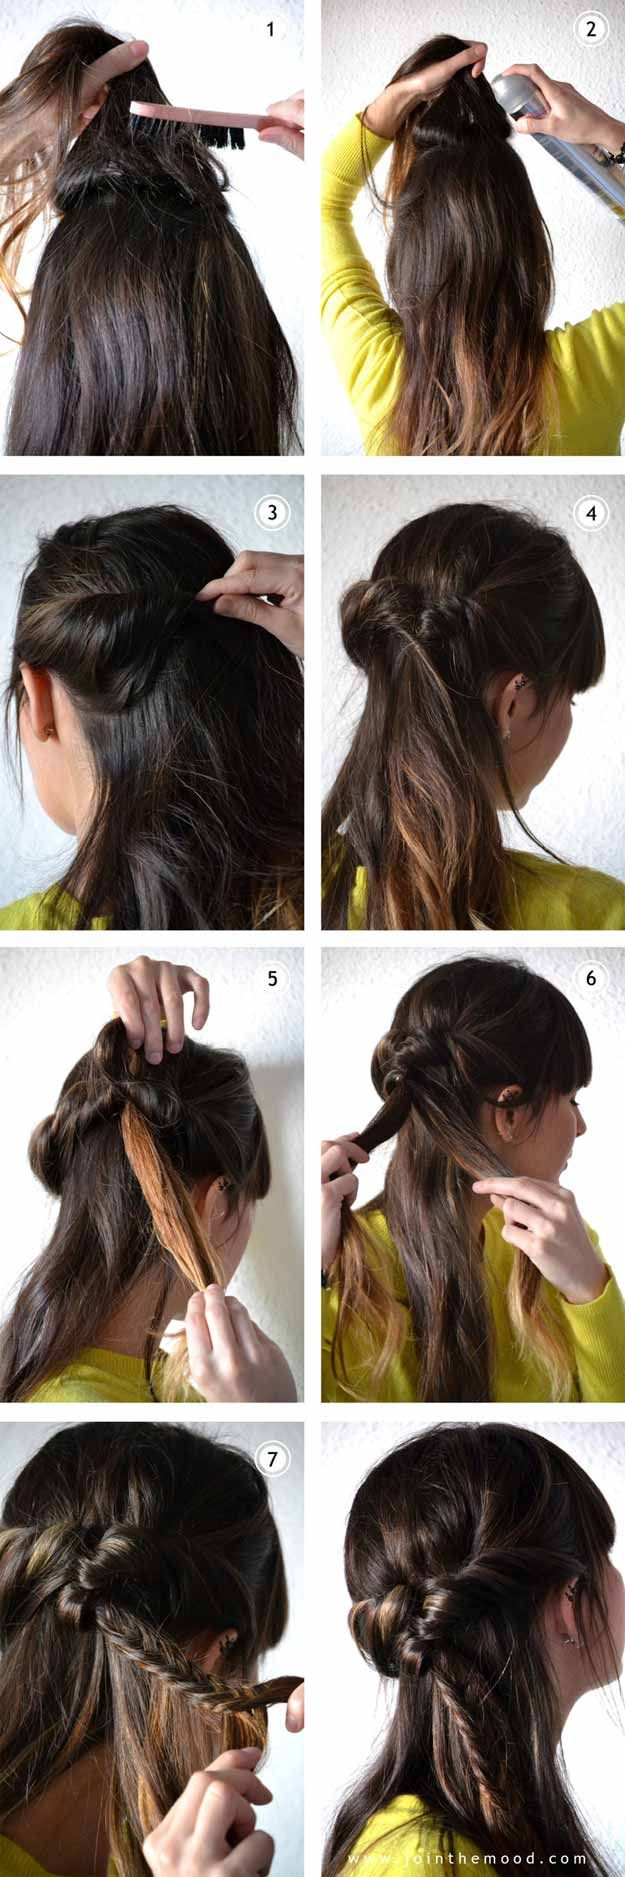 Best 5 Minute Hairstyles - Half Up Fishtail - Quick And Easy Hairstyles and Hair...